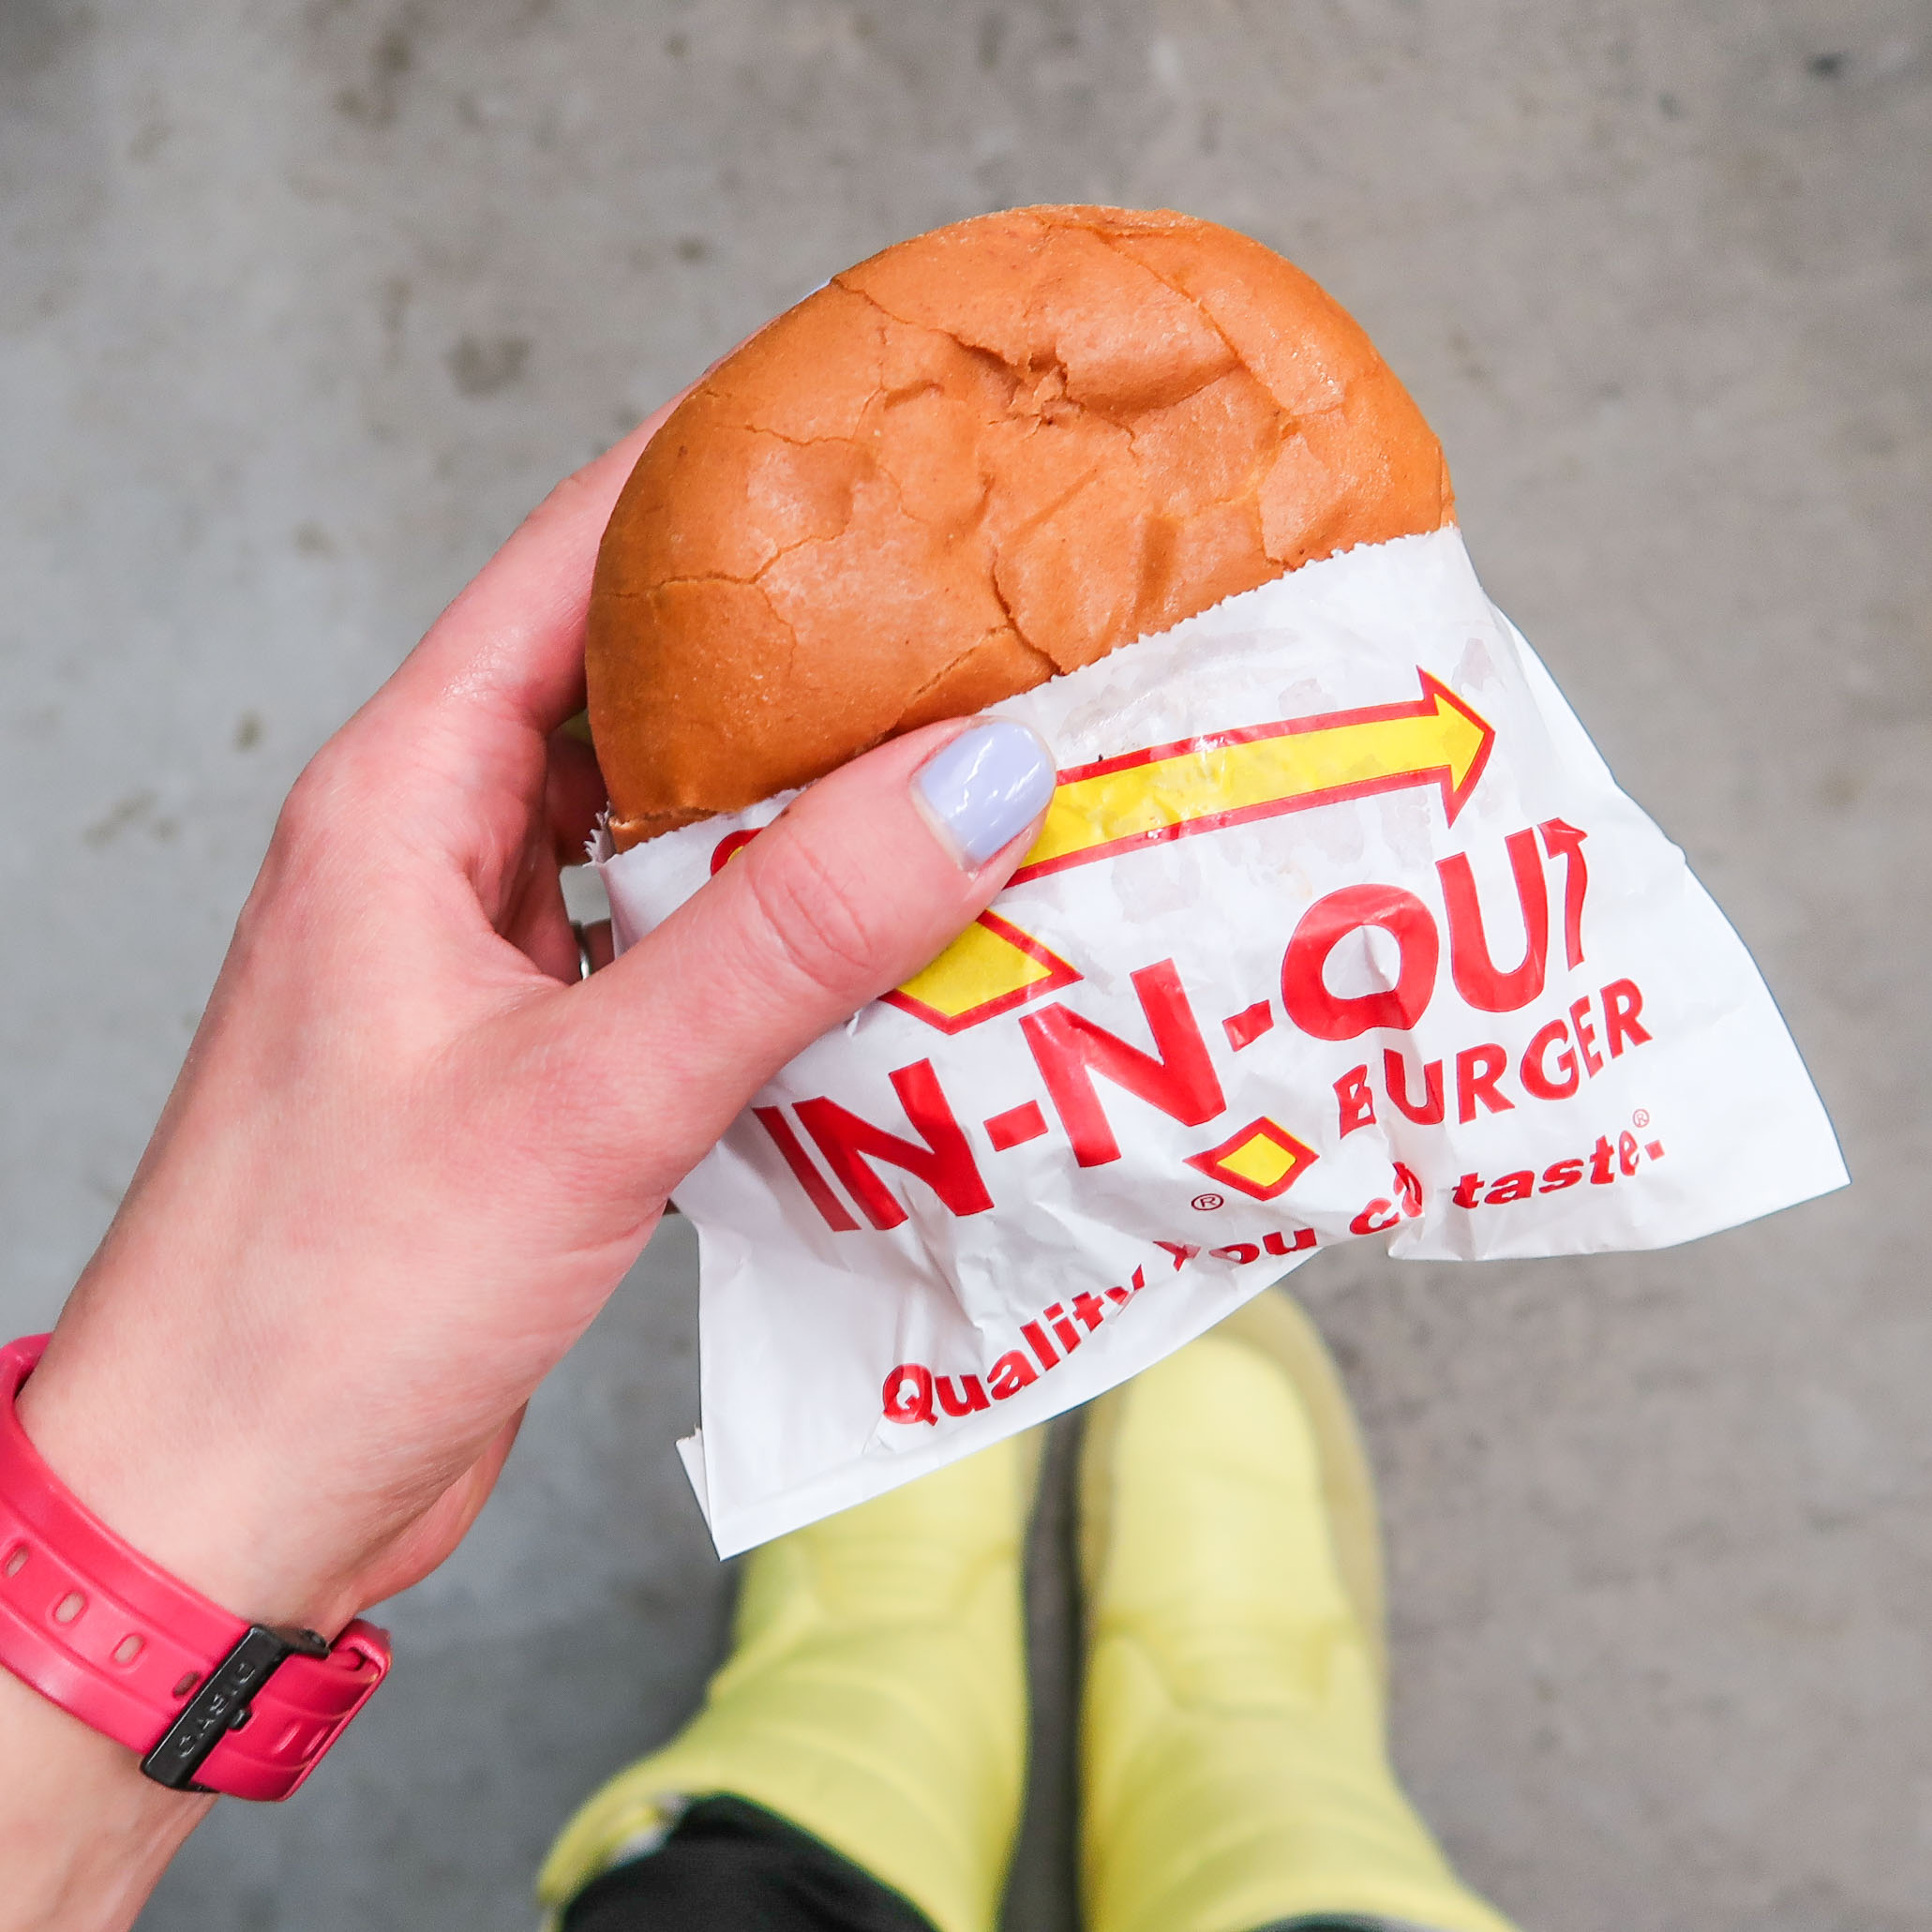 Trying In-N-Out Burger